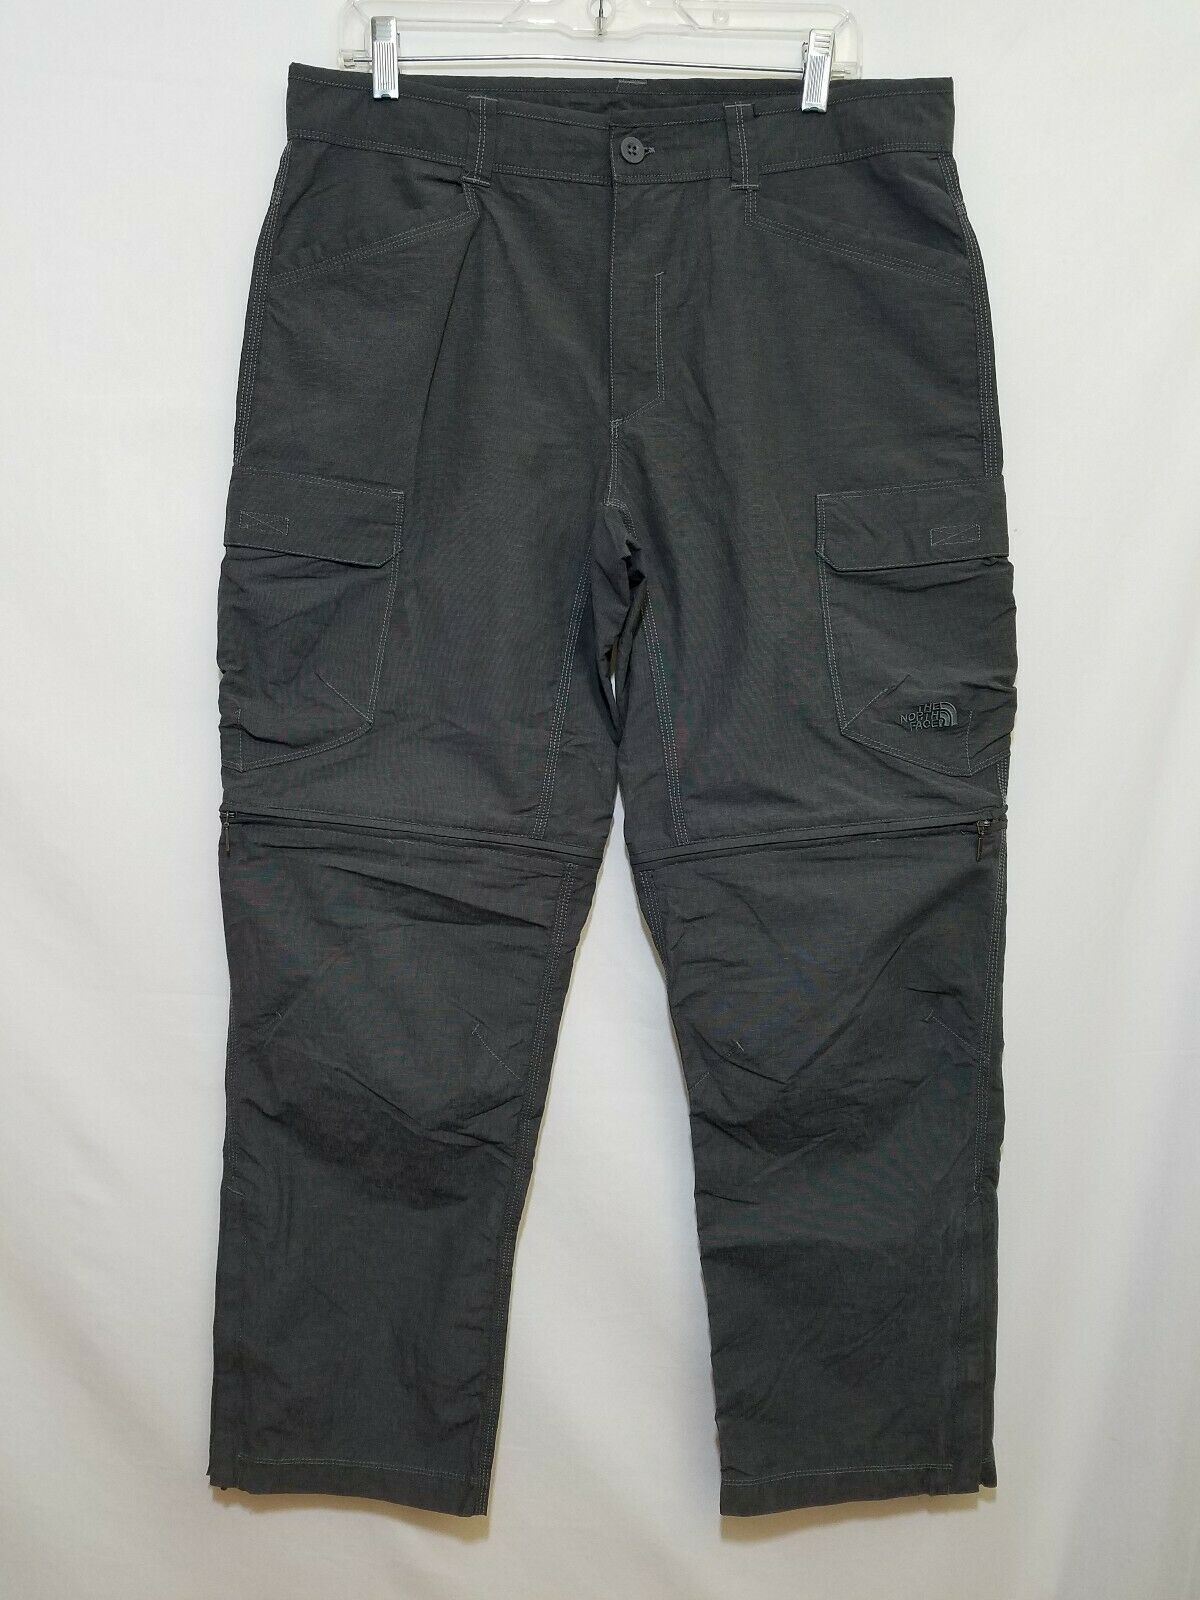 The North Face Mens Grey Congreenible Cargo Hiking Pants Size 34